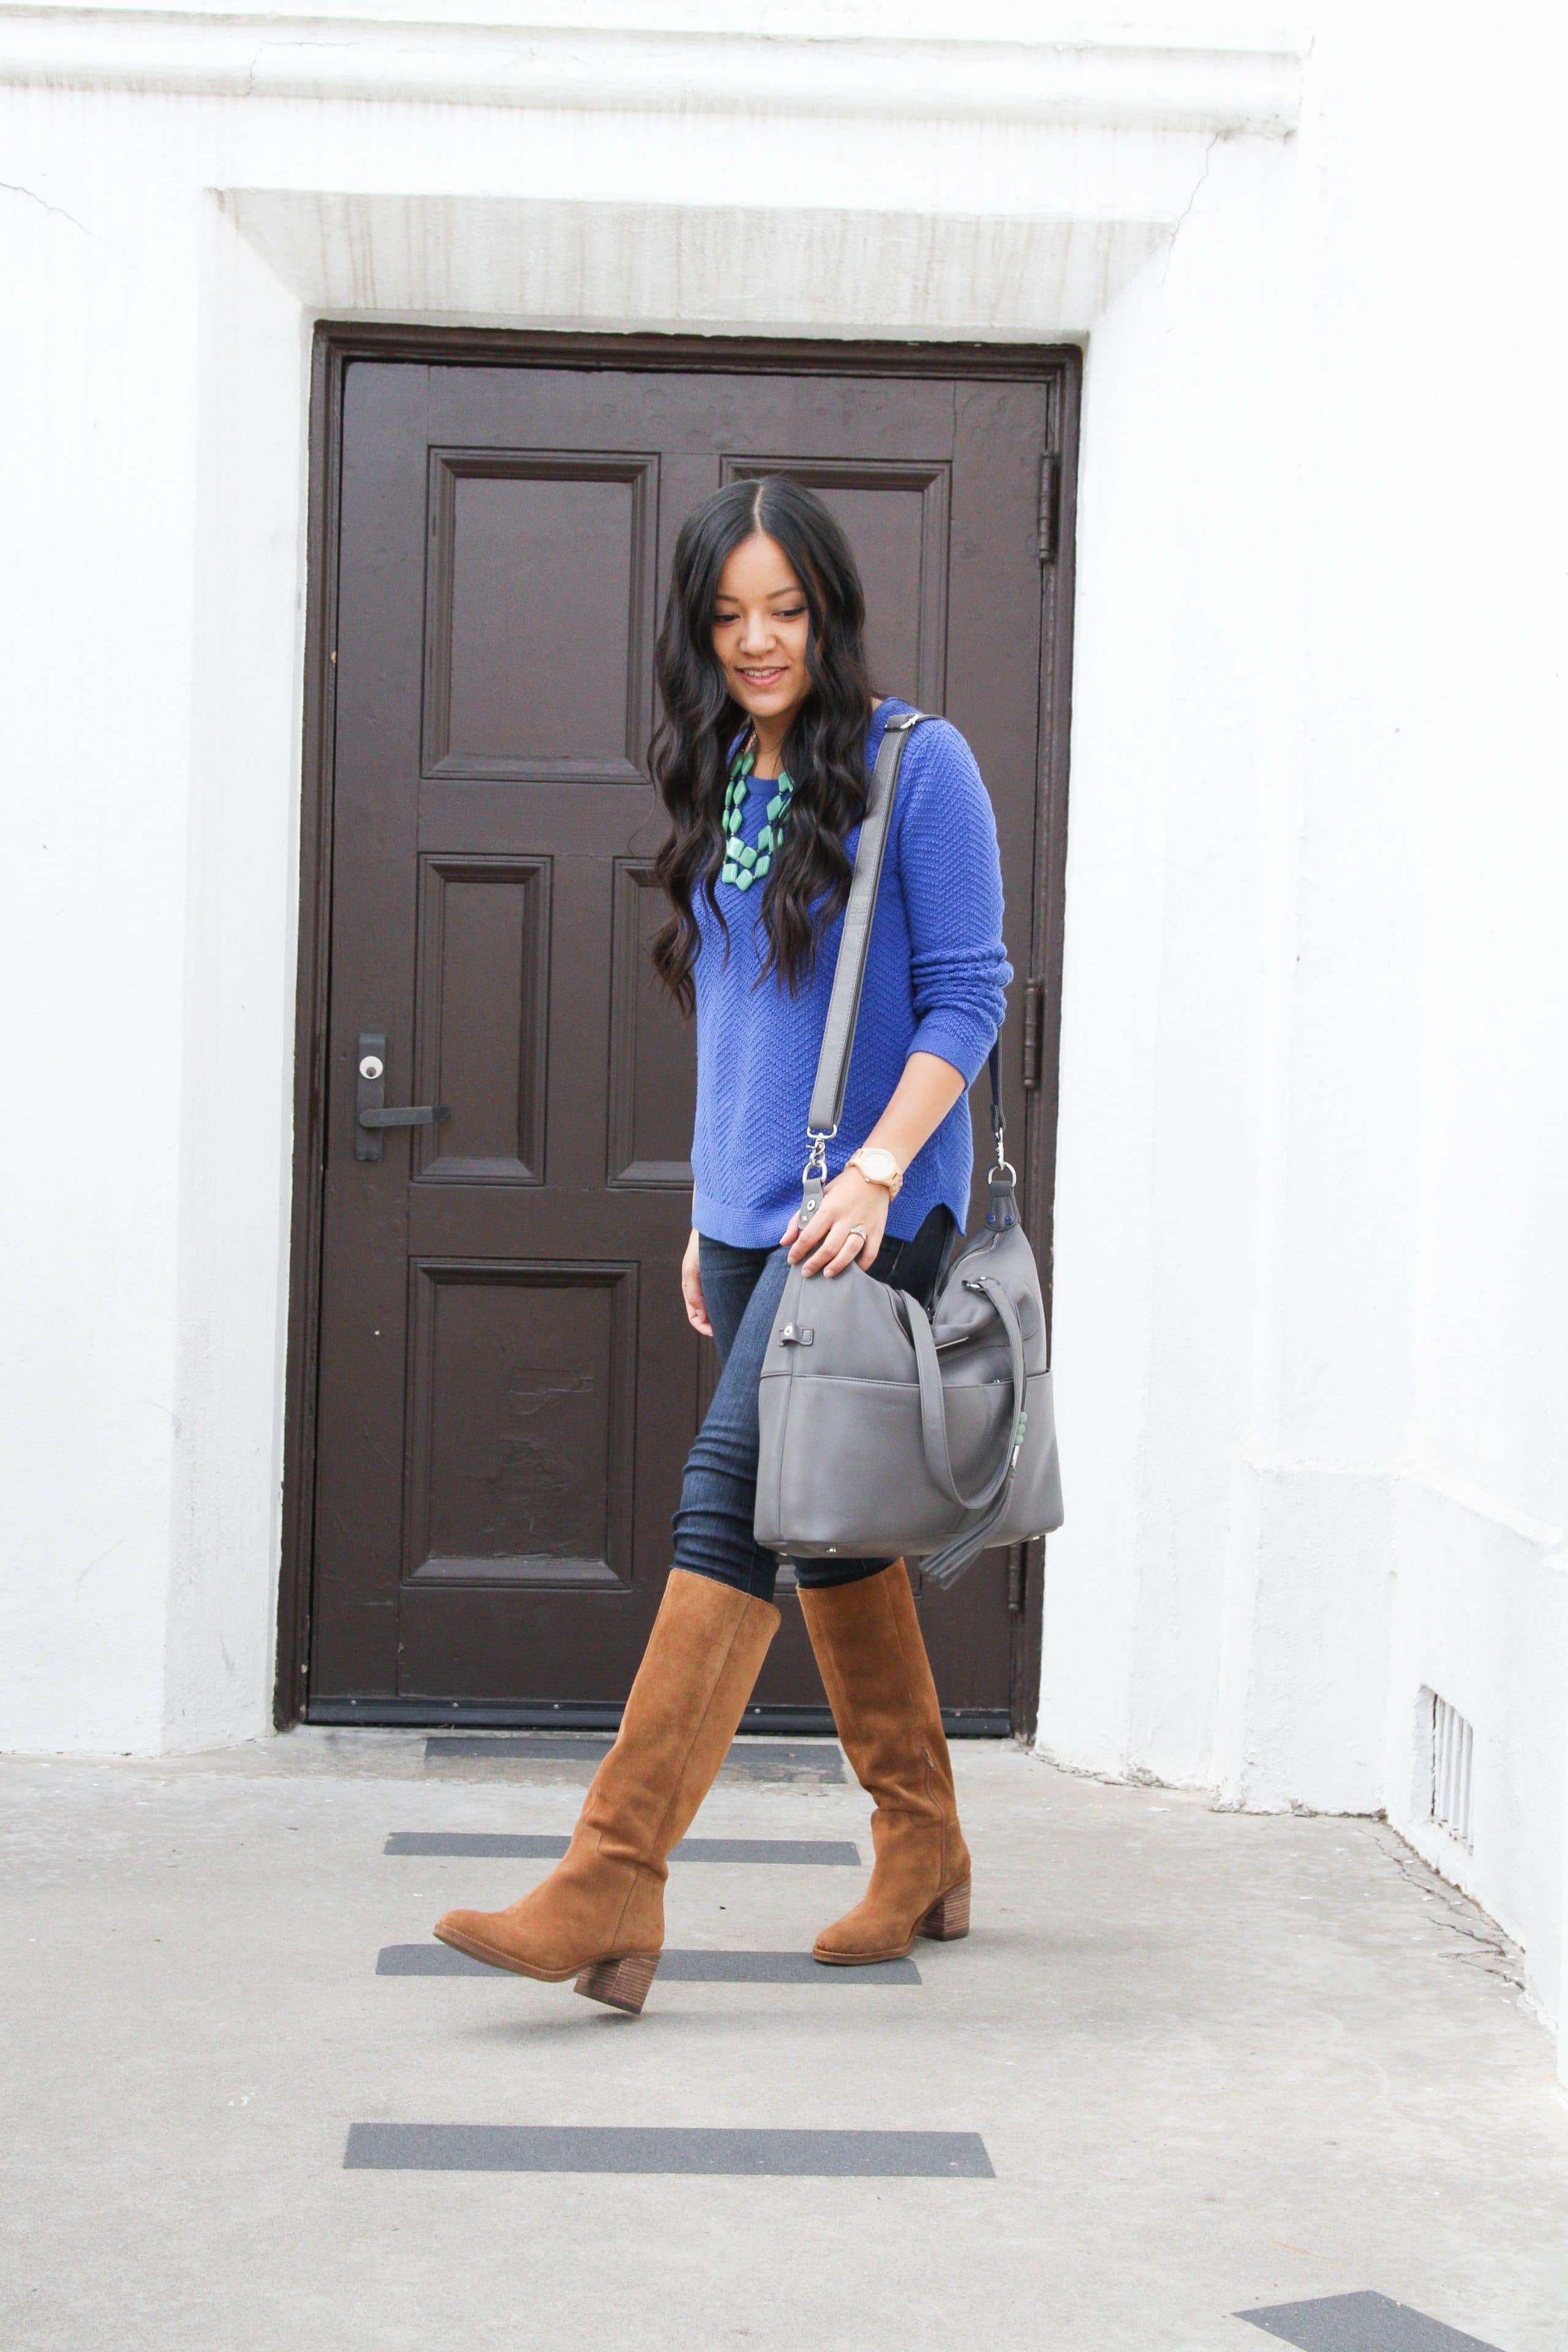 Blue Sweater + Statement Necklace + Gray Tote + Riding Boots